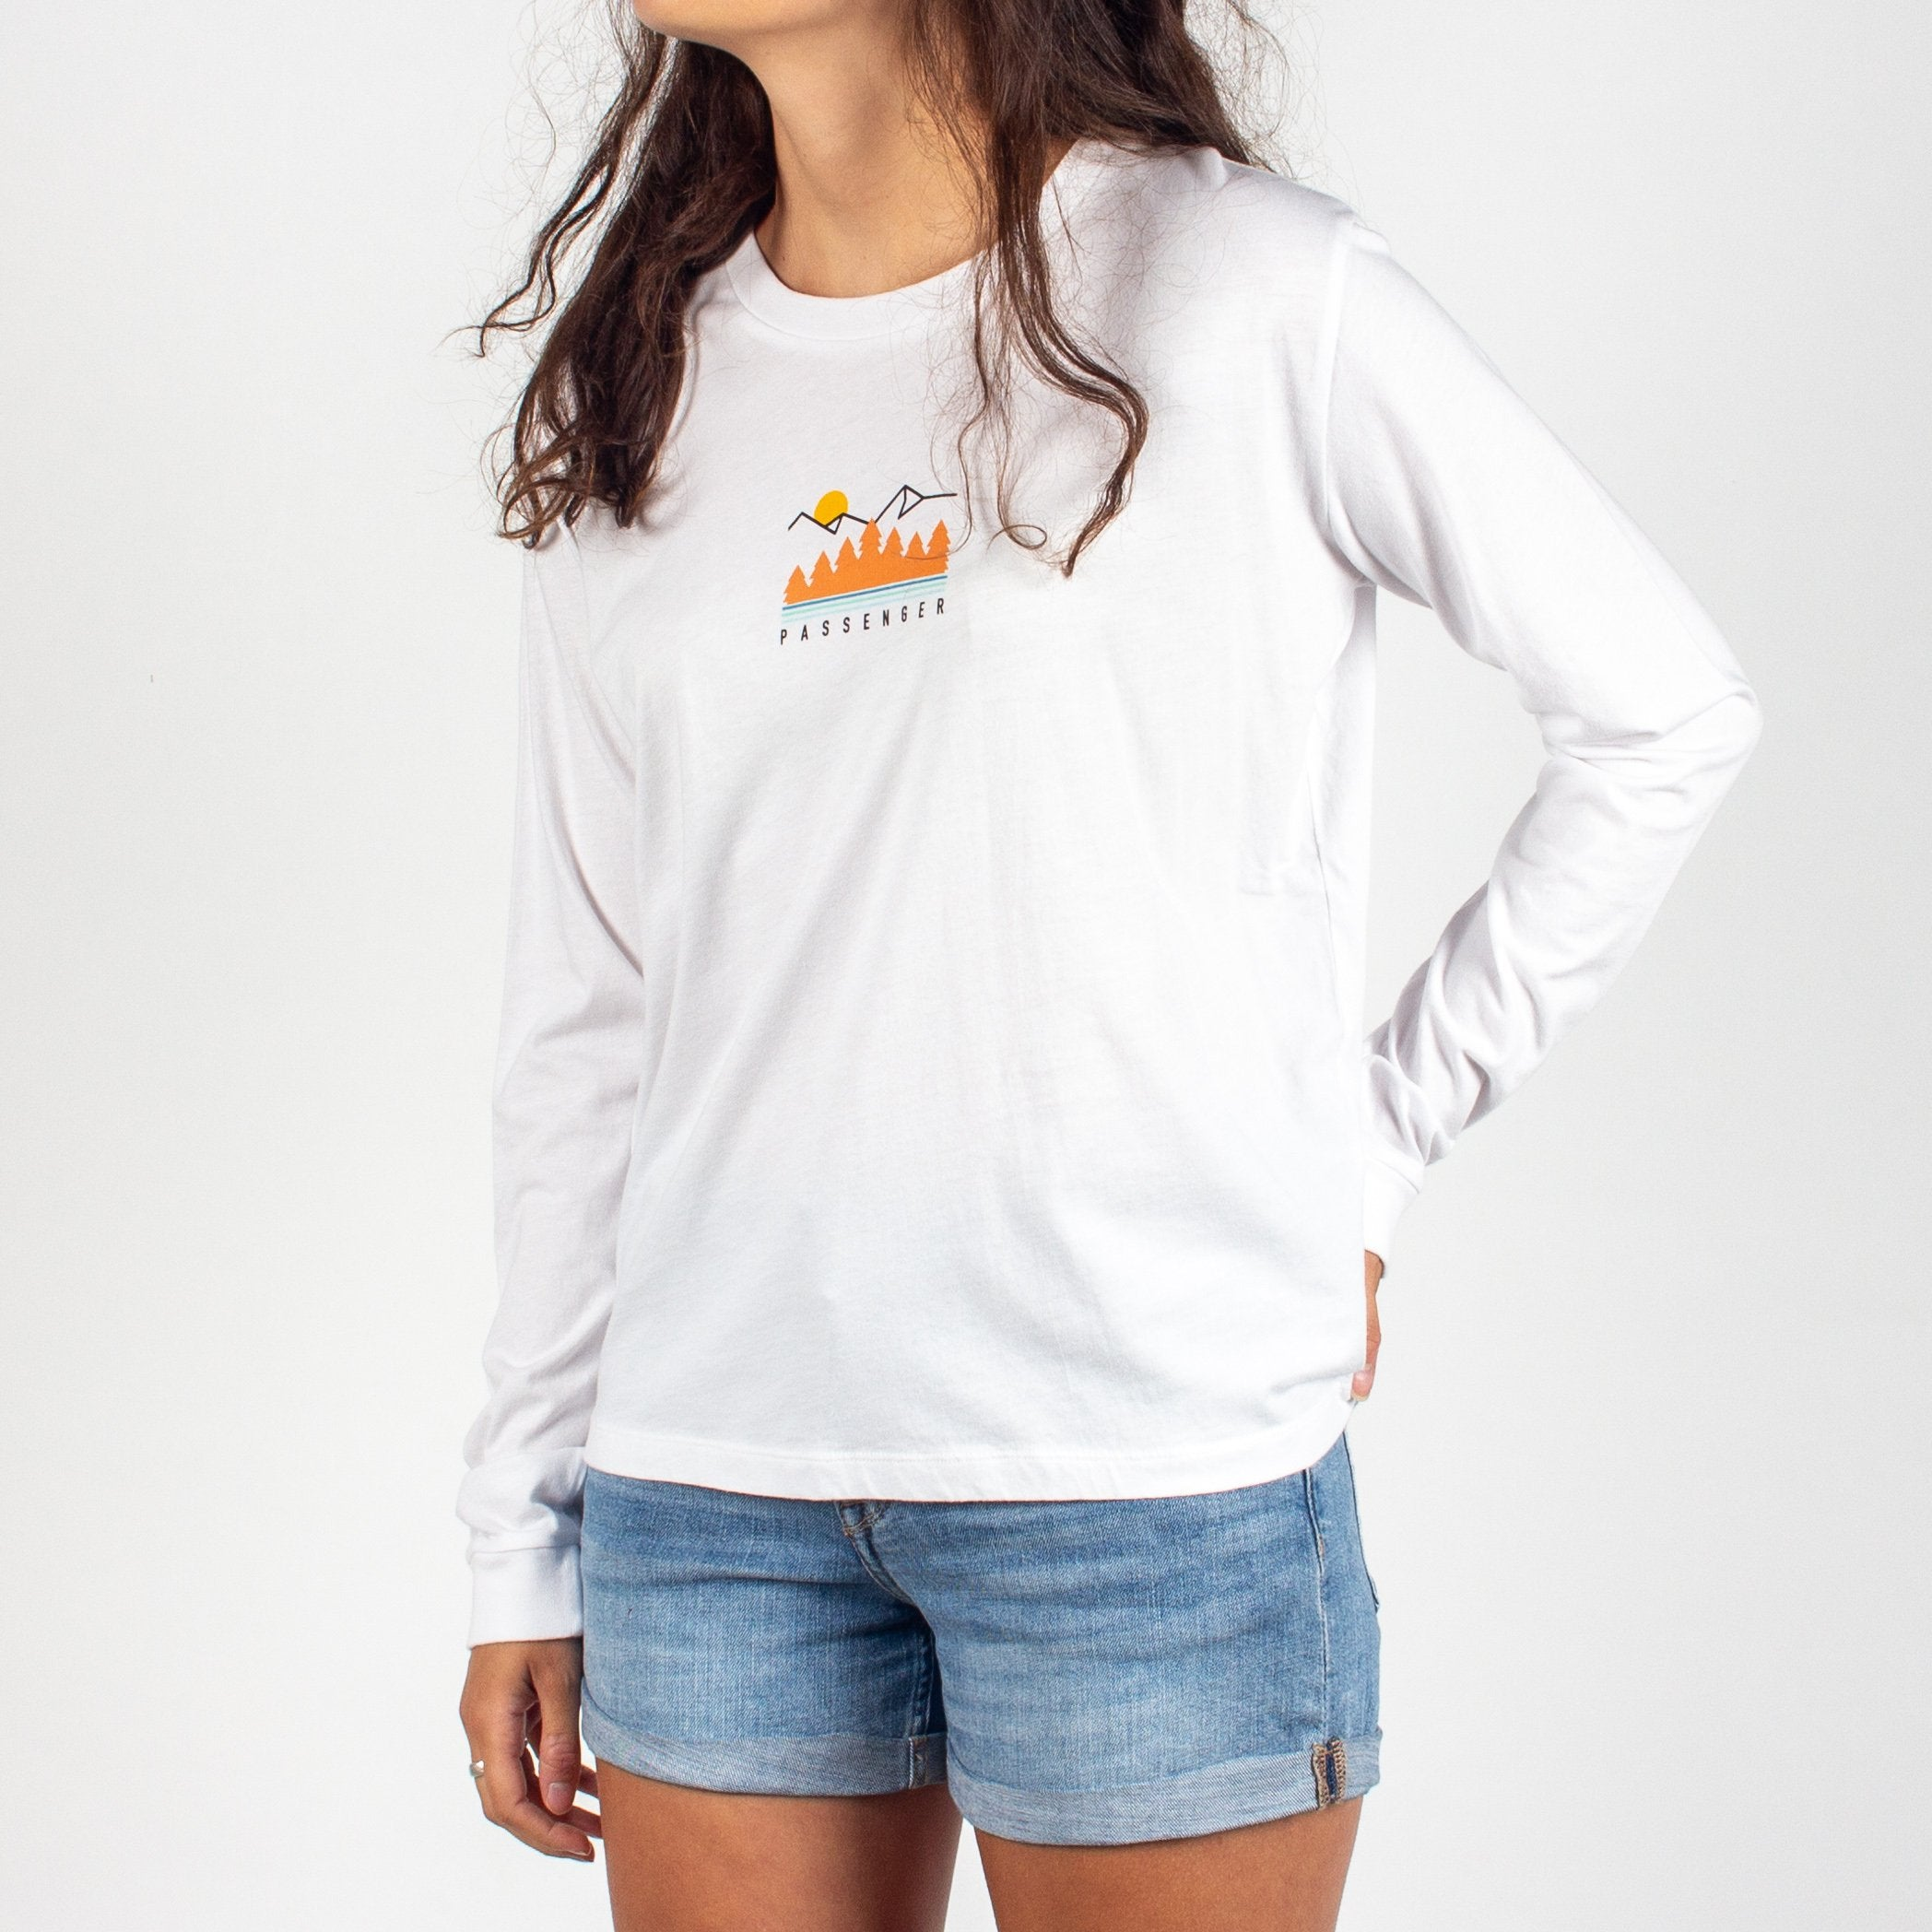 Travel More L/S T-Shirt - White image 4